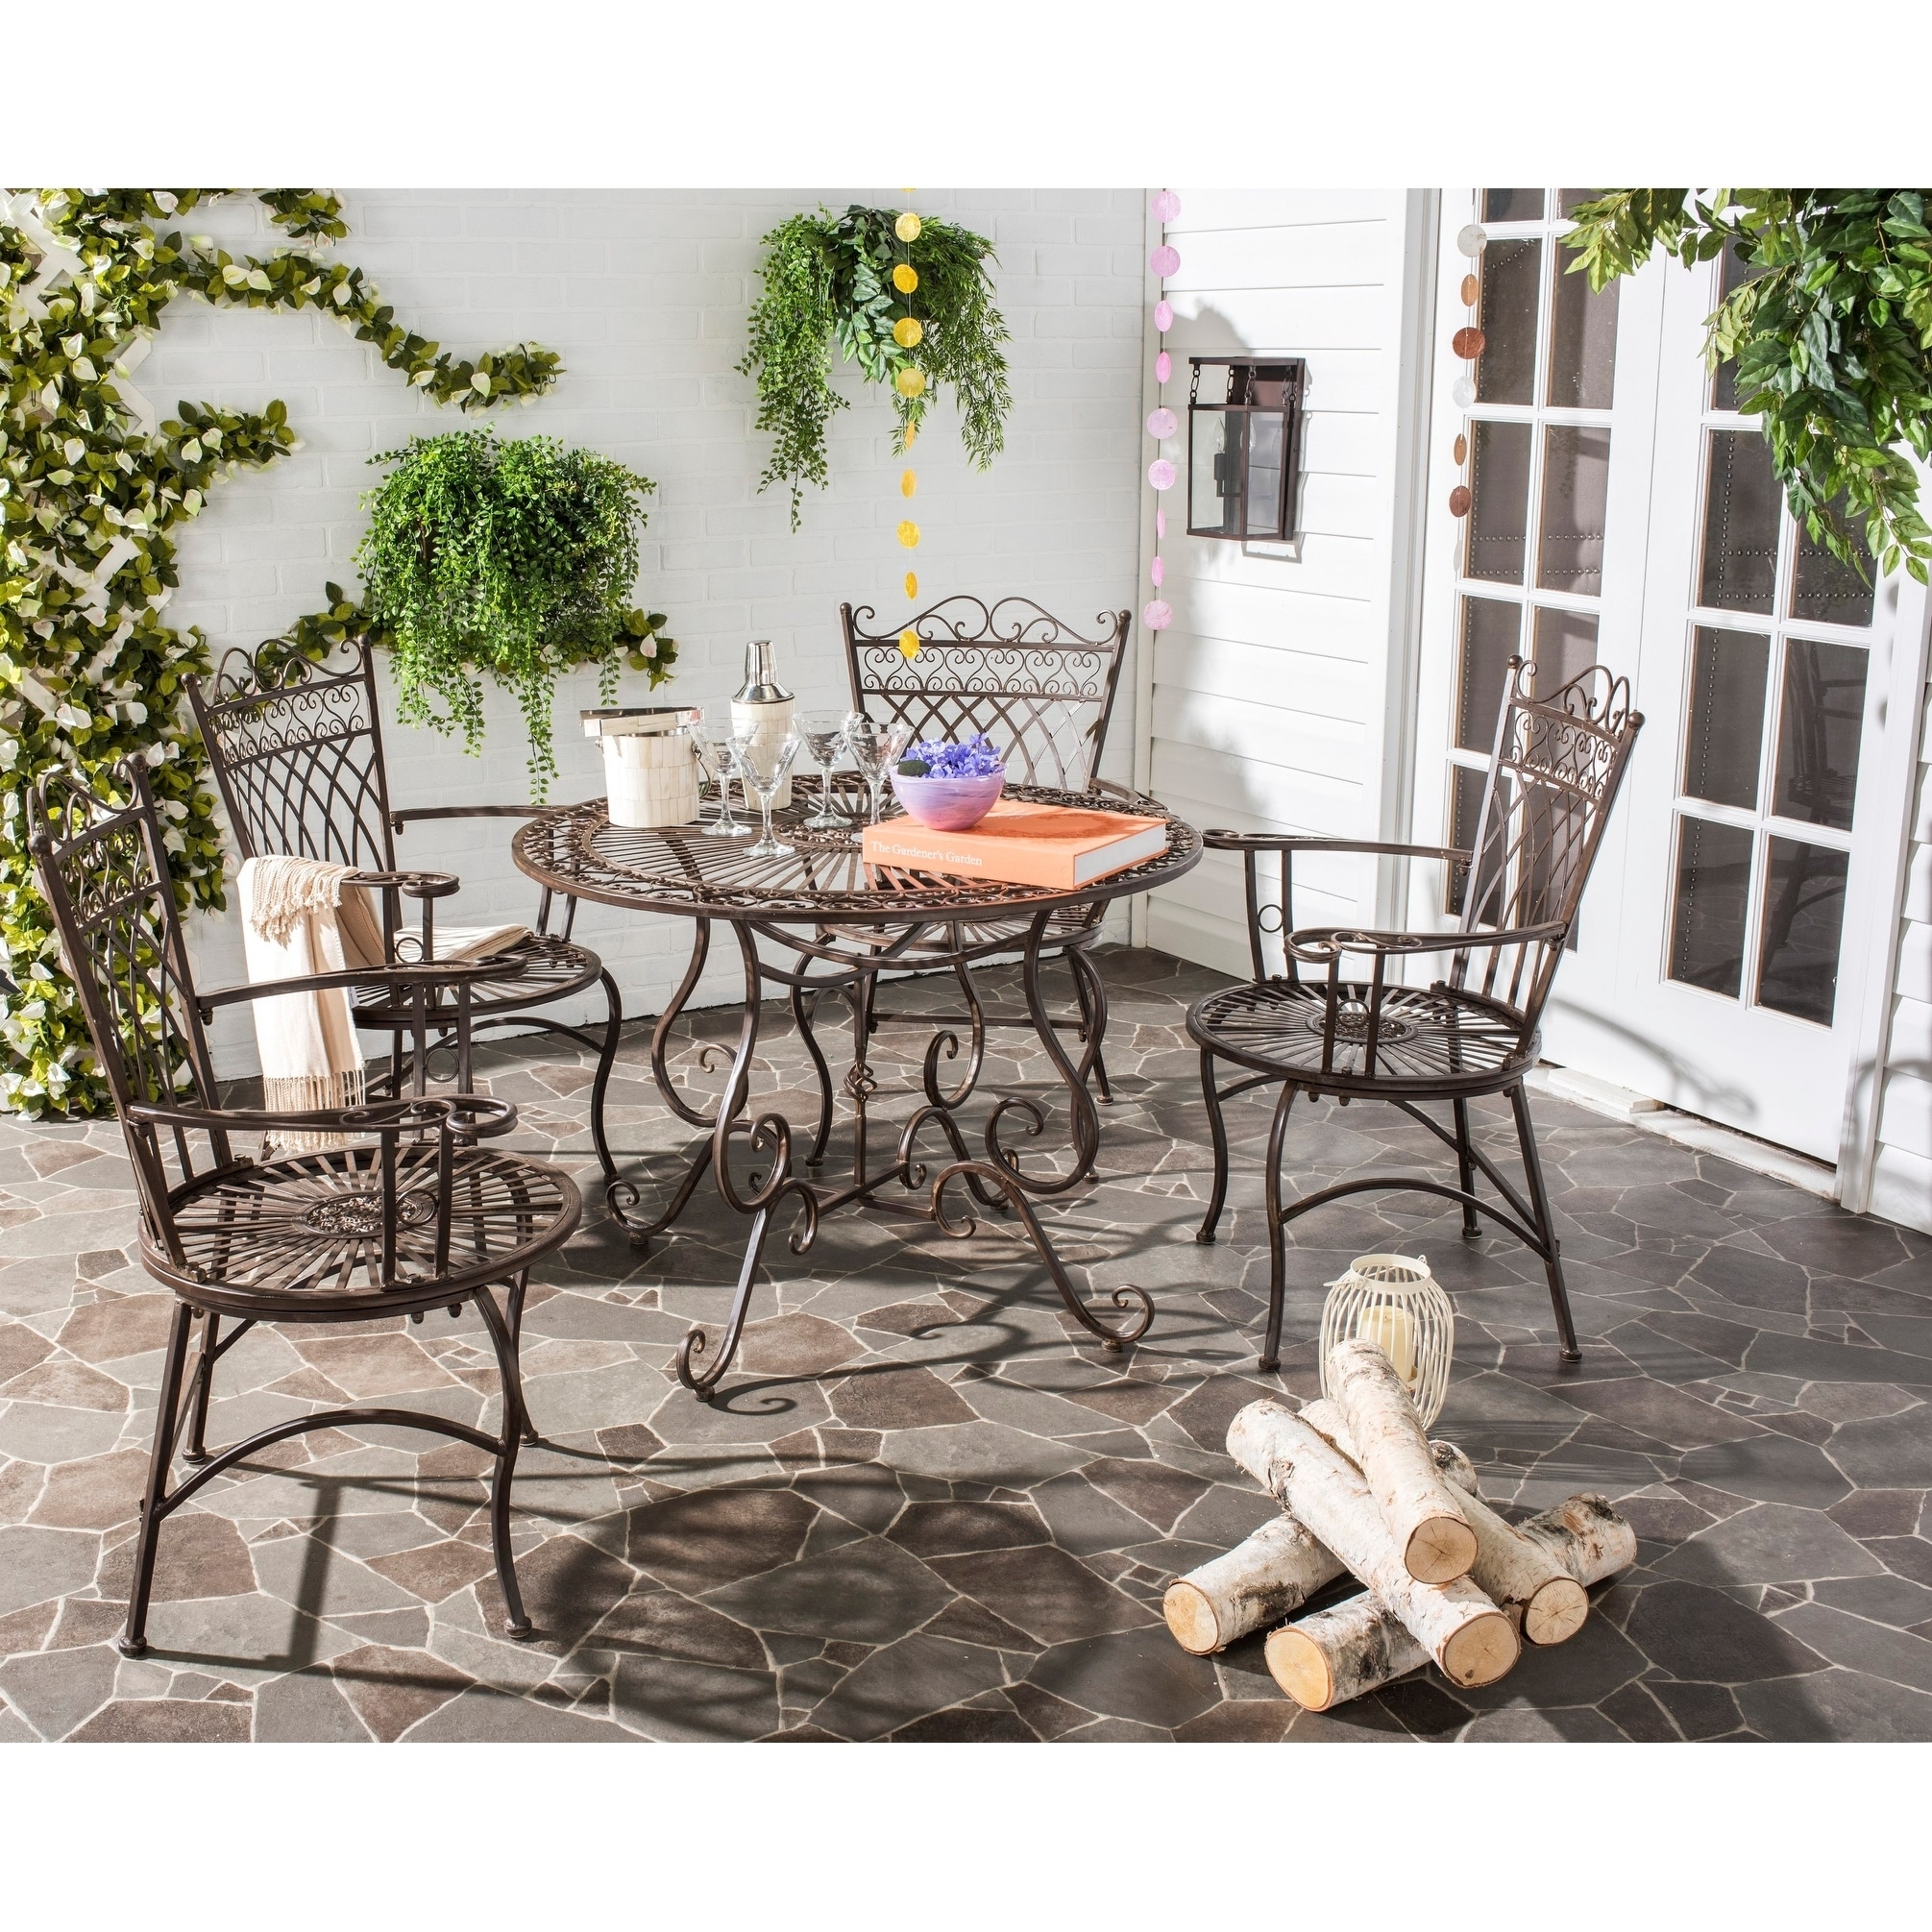 Safavieh Outdoor Living Rustic Thessaly Rustic Brown Dining Set 5 Piece On Sale Overstock 10300145